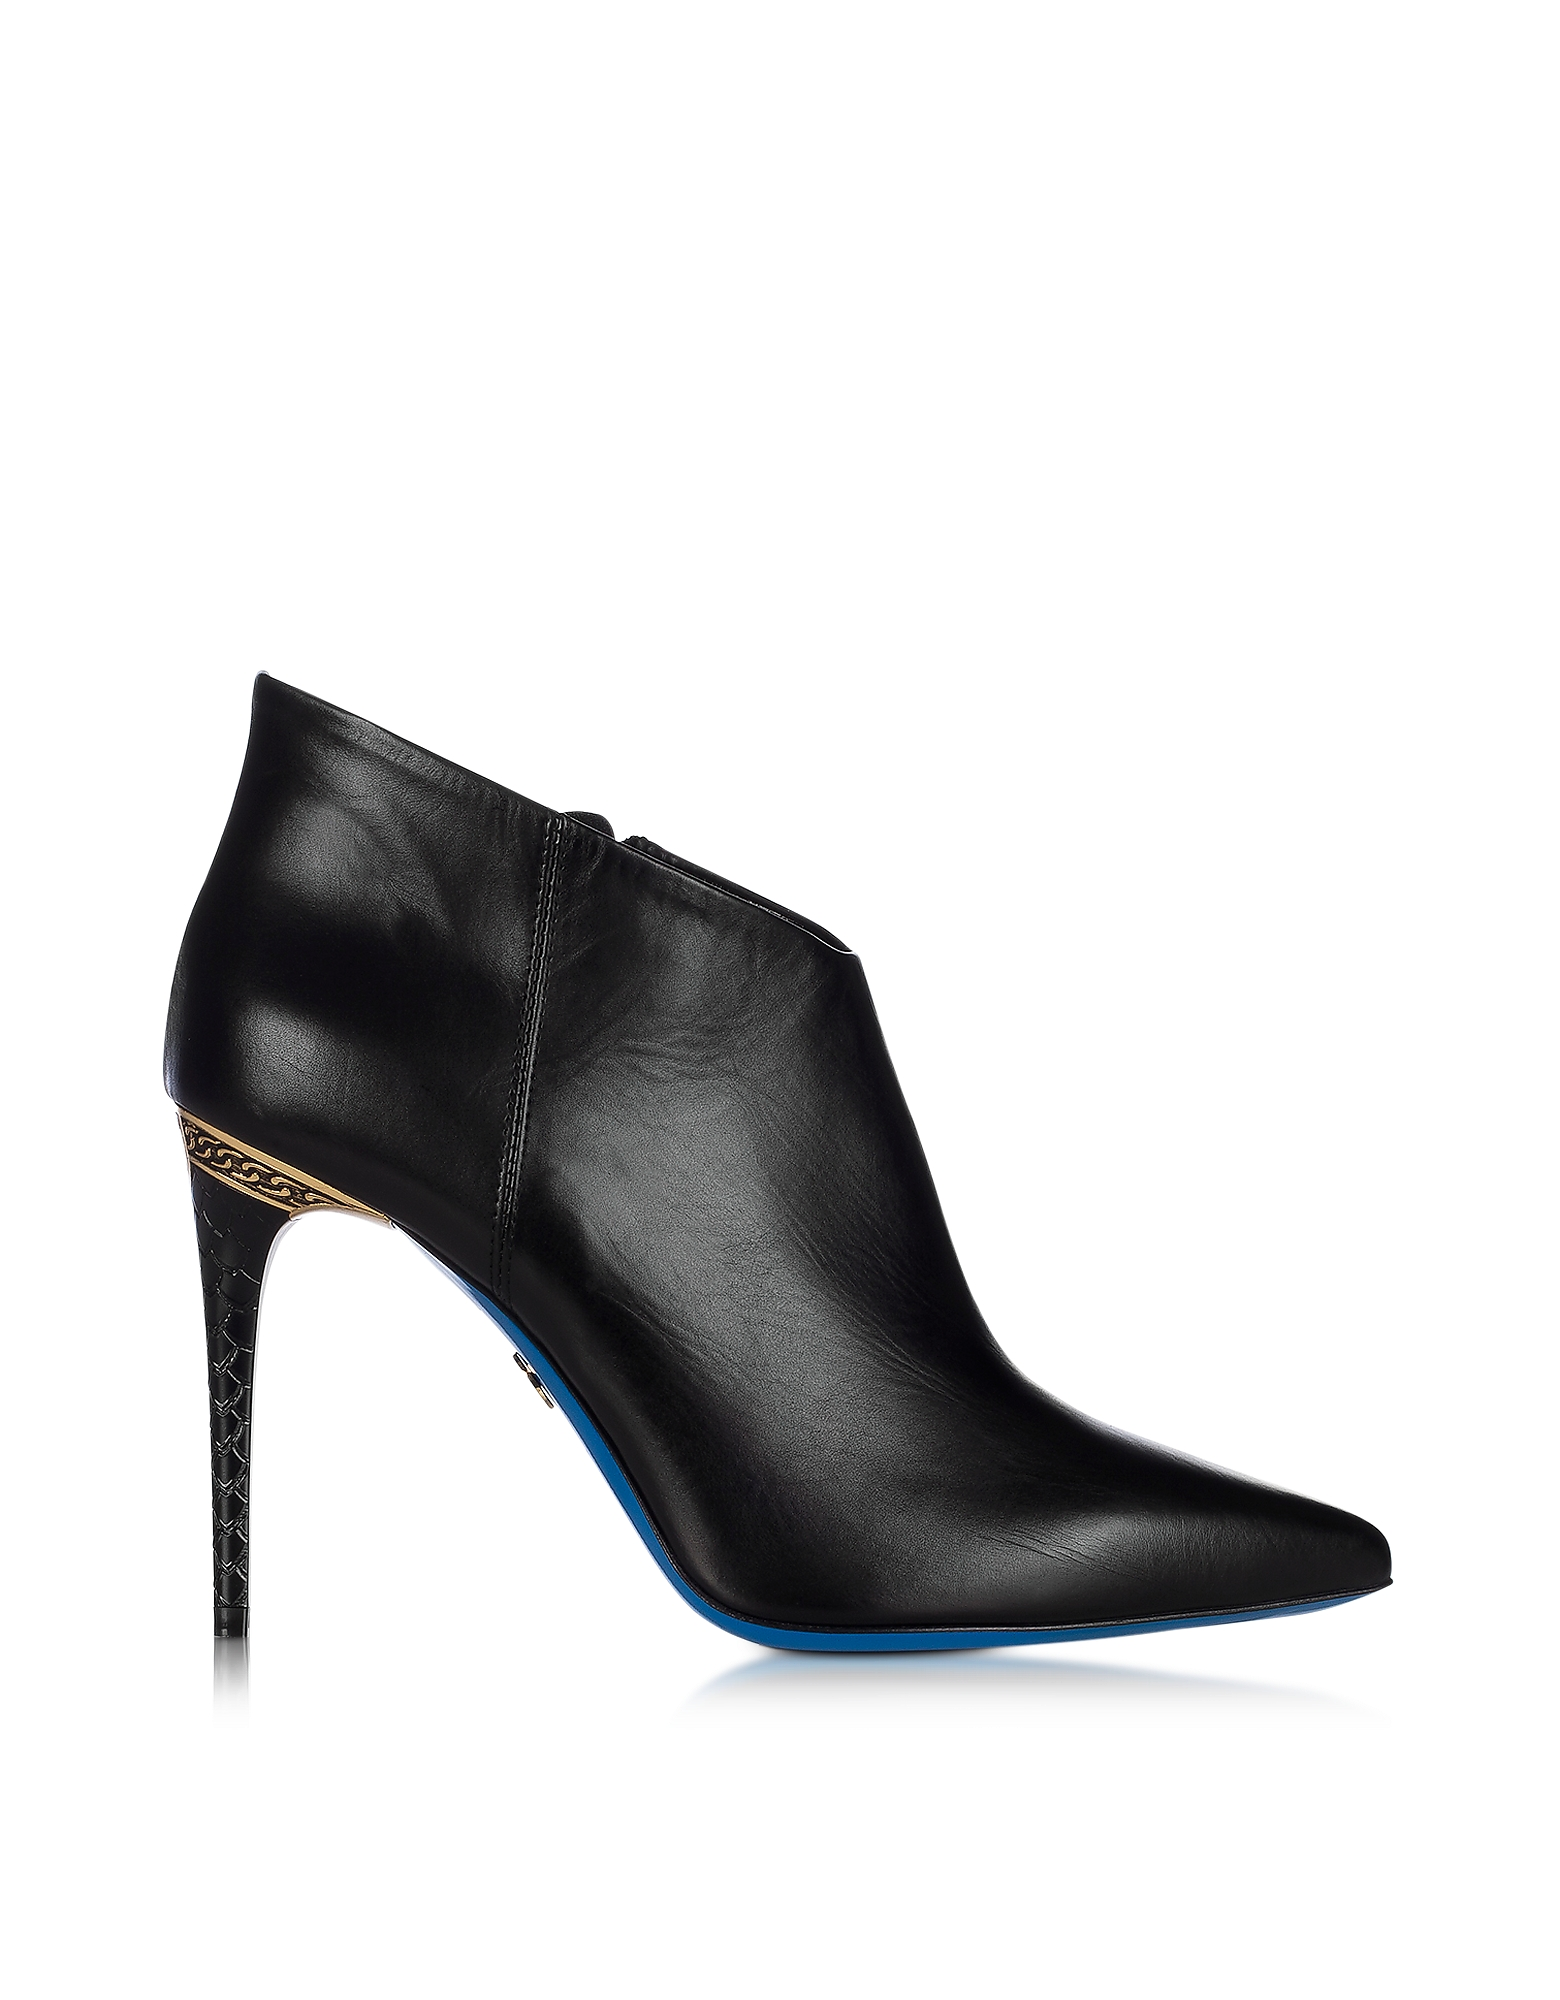 Loriblu Shoes, Black Leather Pointed Ankle Boot